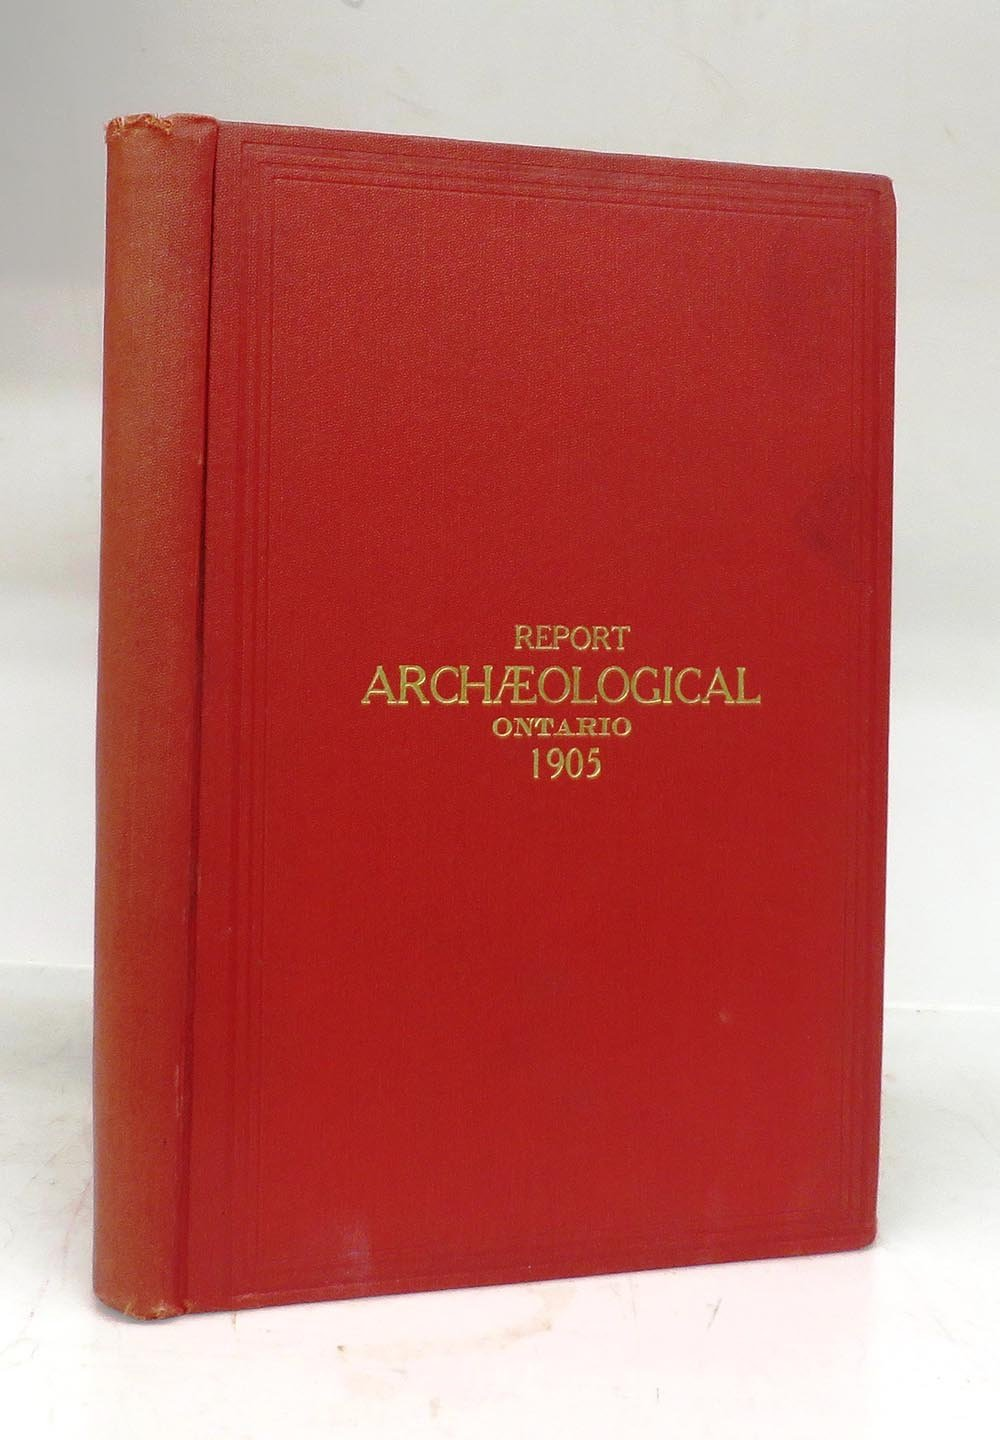 Annual Archaeological Report 1905 Being Part of Appendix to the Report of The Minister of Education Ontario